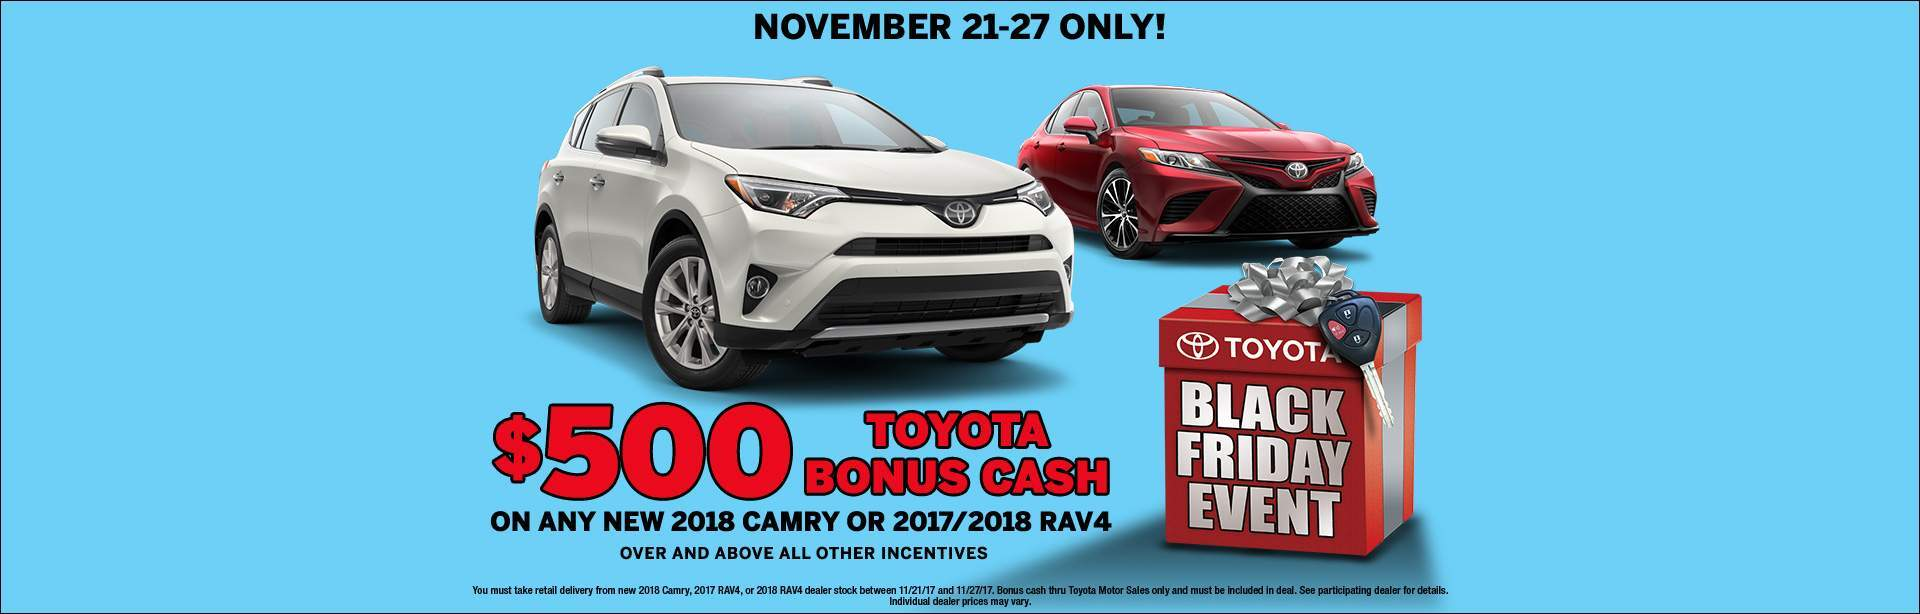 Toyota's Black Friday Event is on at Allan Nott! Hurry in for $500 BONUS CASH!